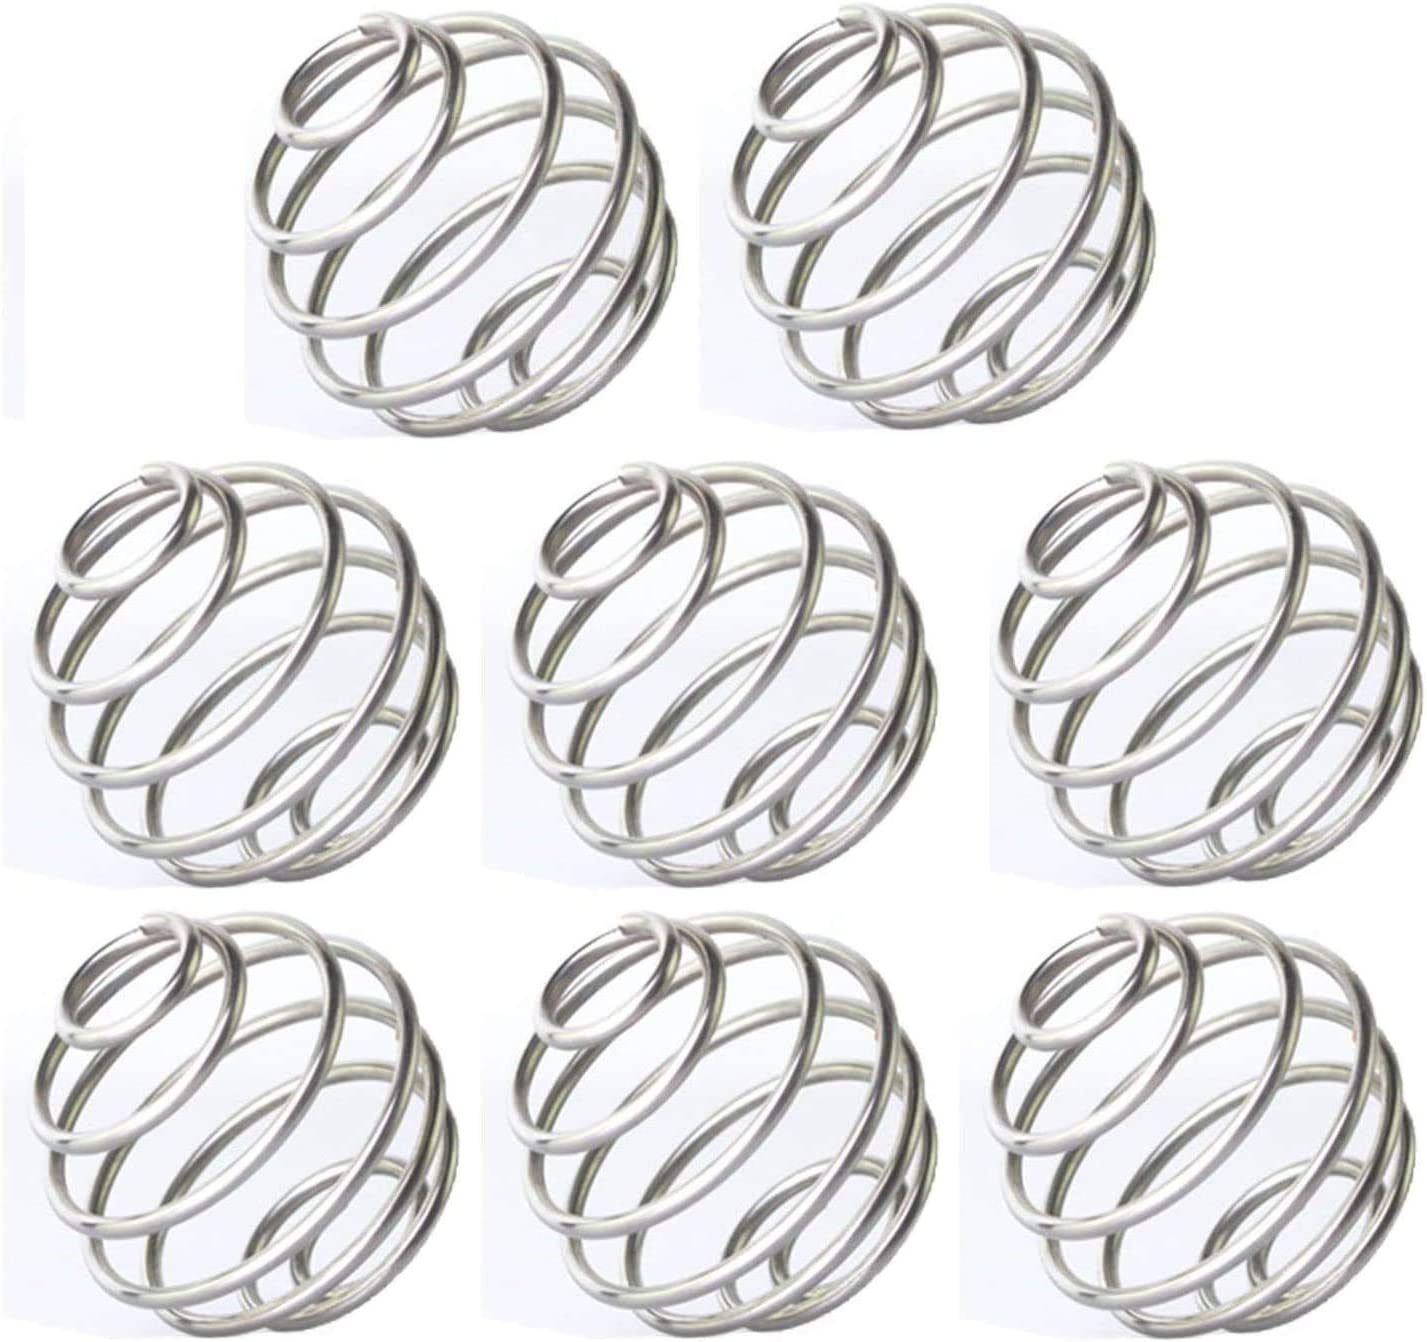 Mocollmax Stainless Whisk Ball Wire Shaker Ball, Wire Mixer Mixing Whisk Ball Replacement For Shaker Cup,Pack of 8, 2.1